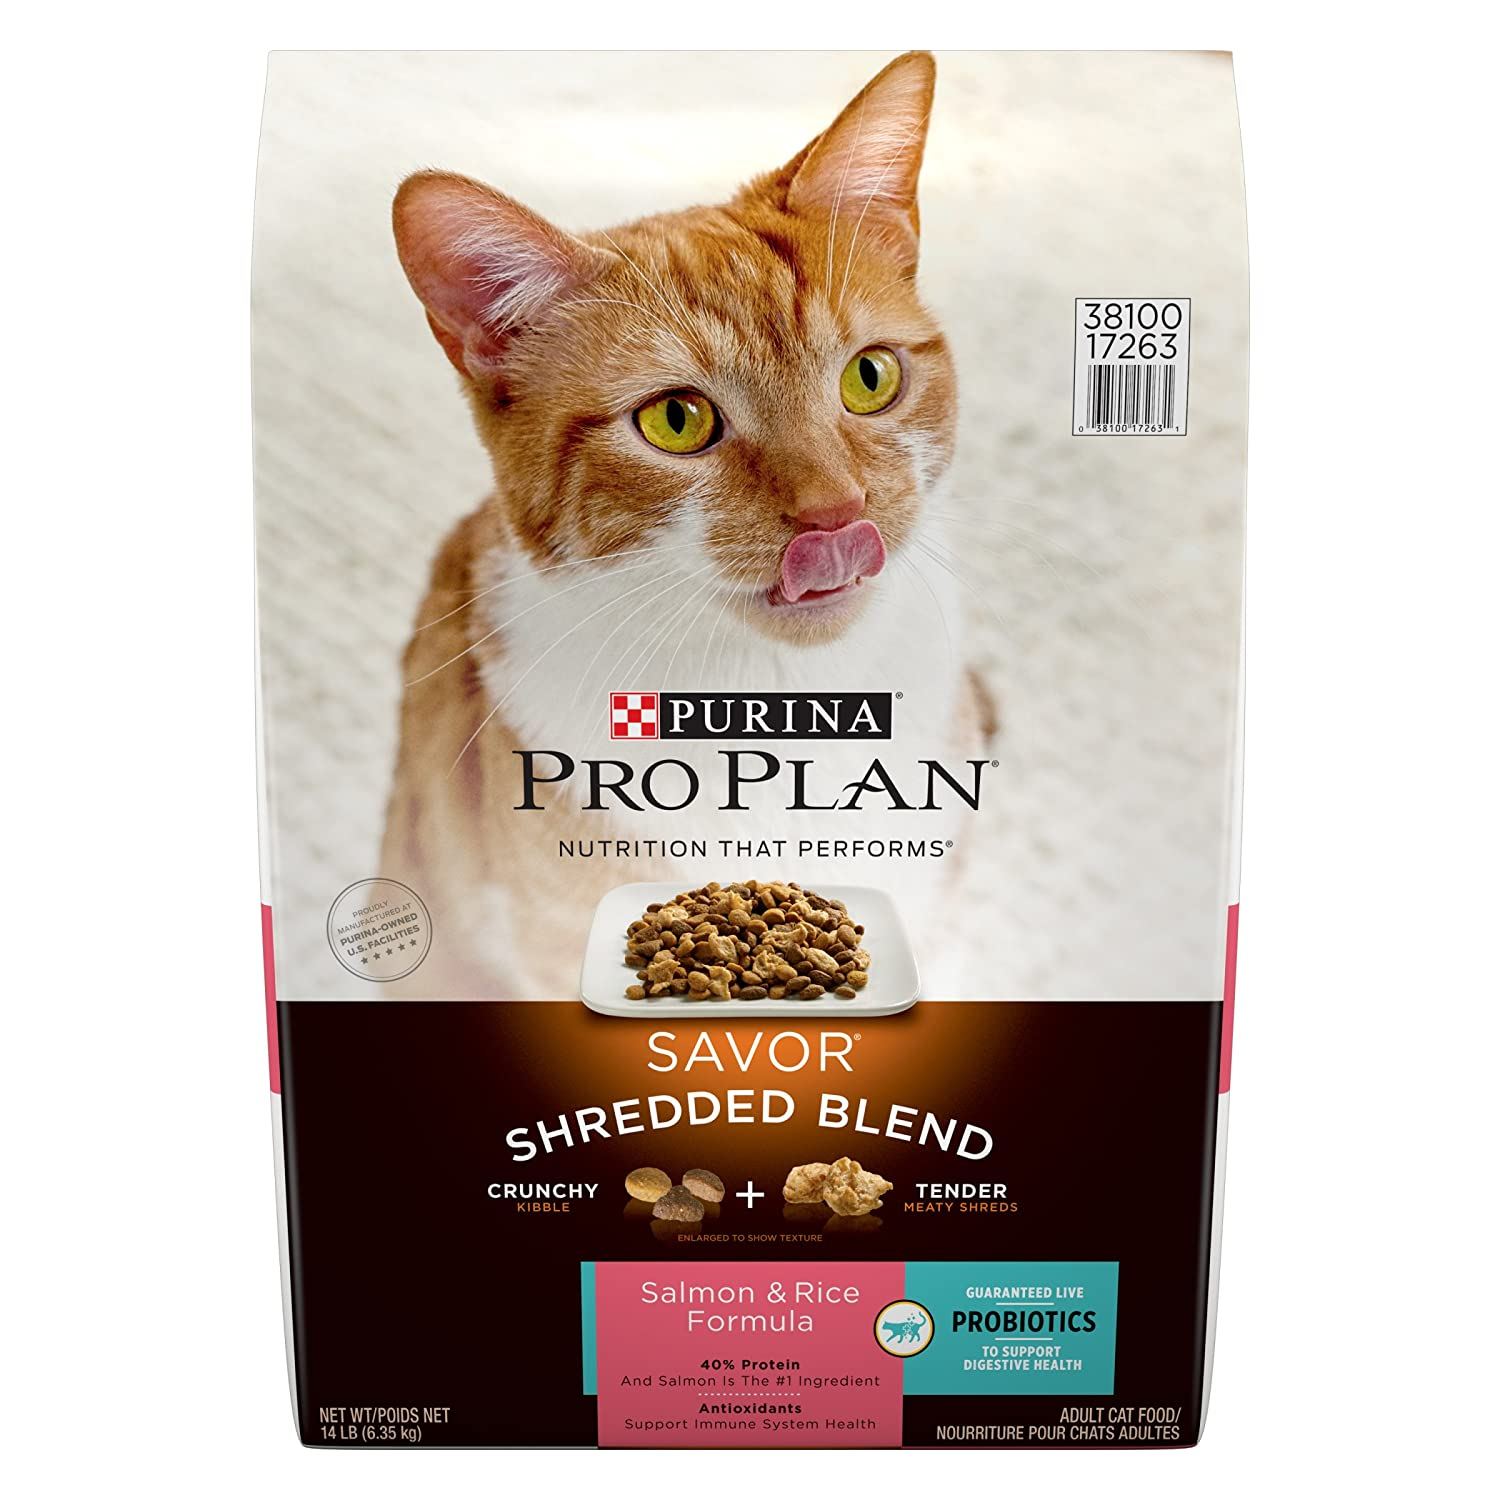 14 lb. Bag Purina Pro Plan SAVOR Adult Shredded Blend Salmon & Rice Formula Adult Dry Food (1) 14 lb. Bag